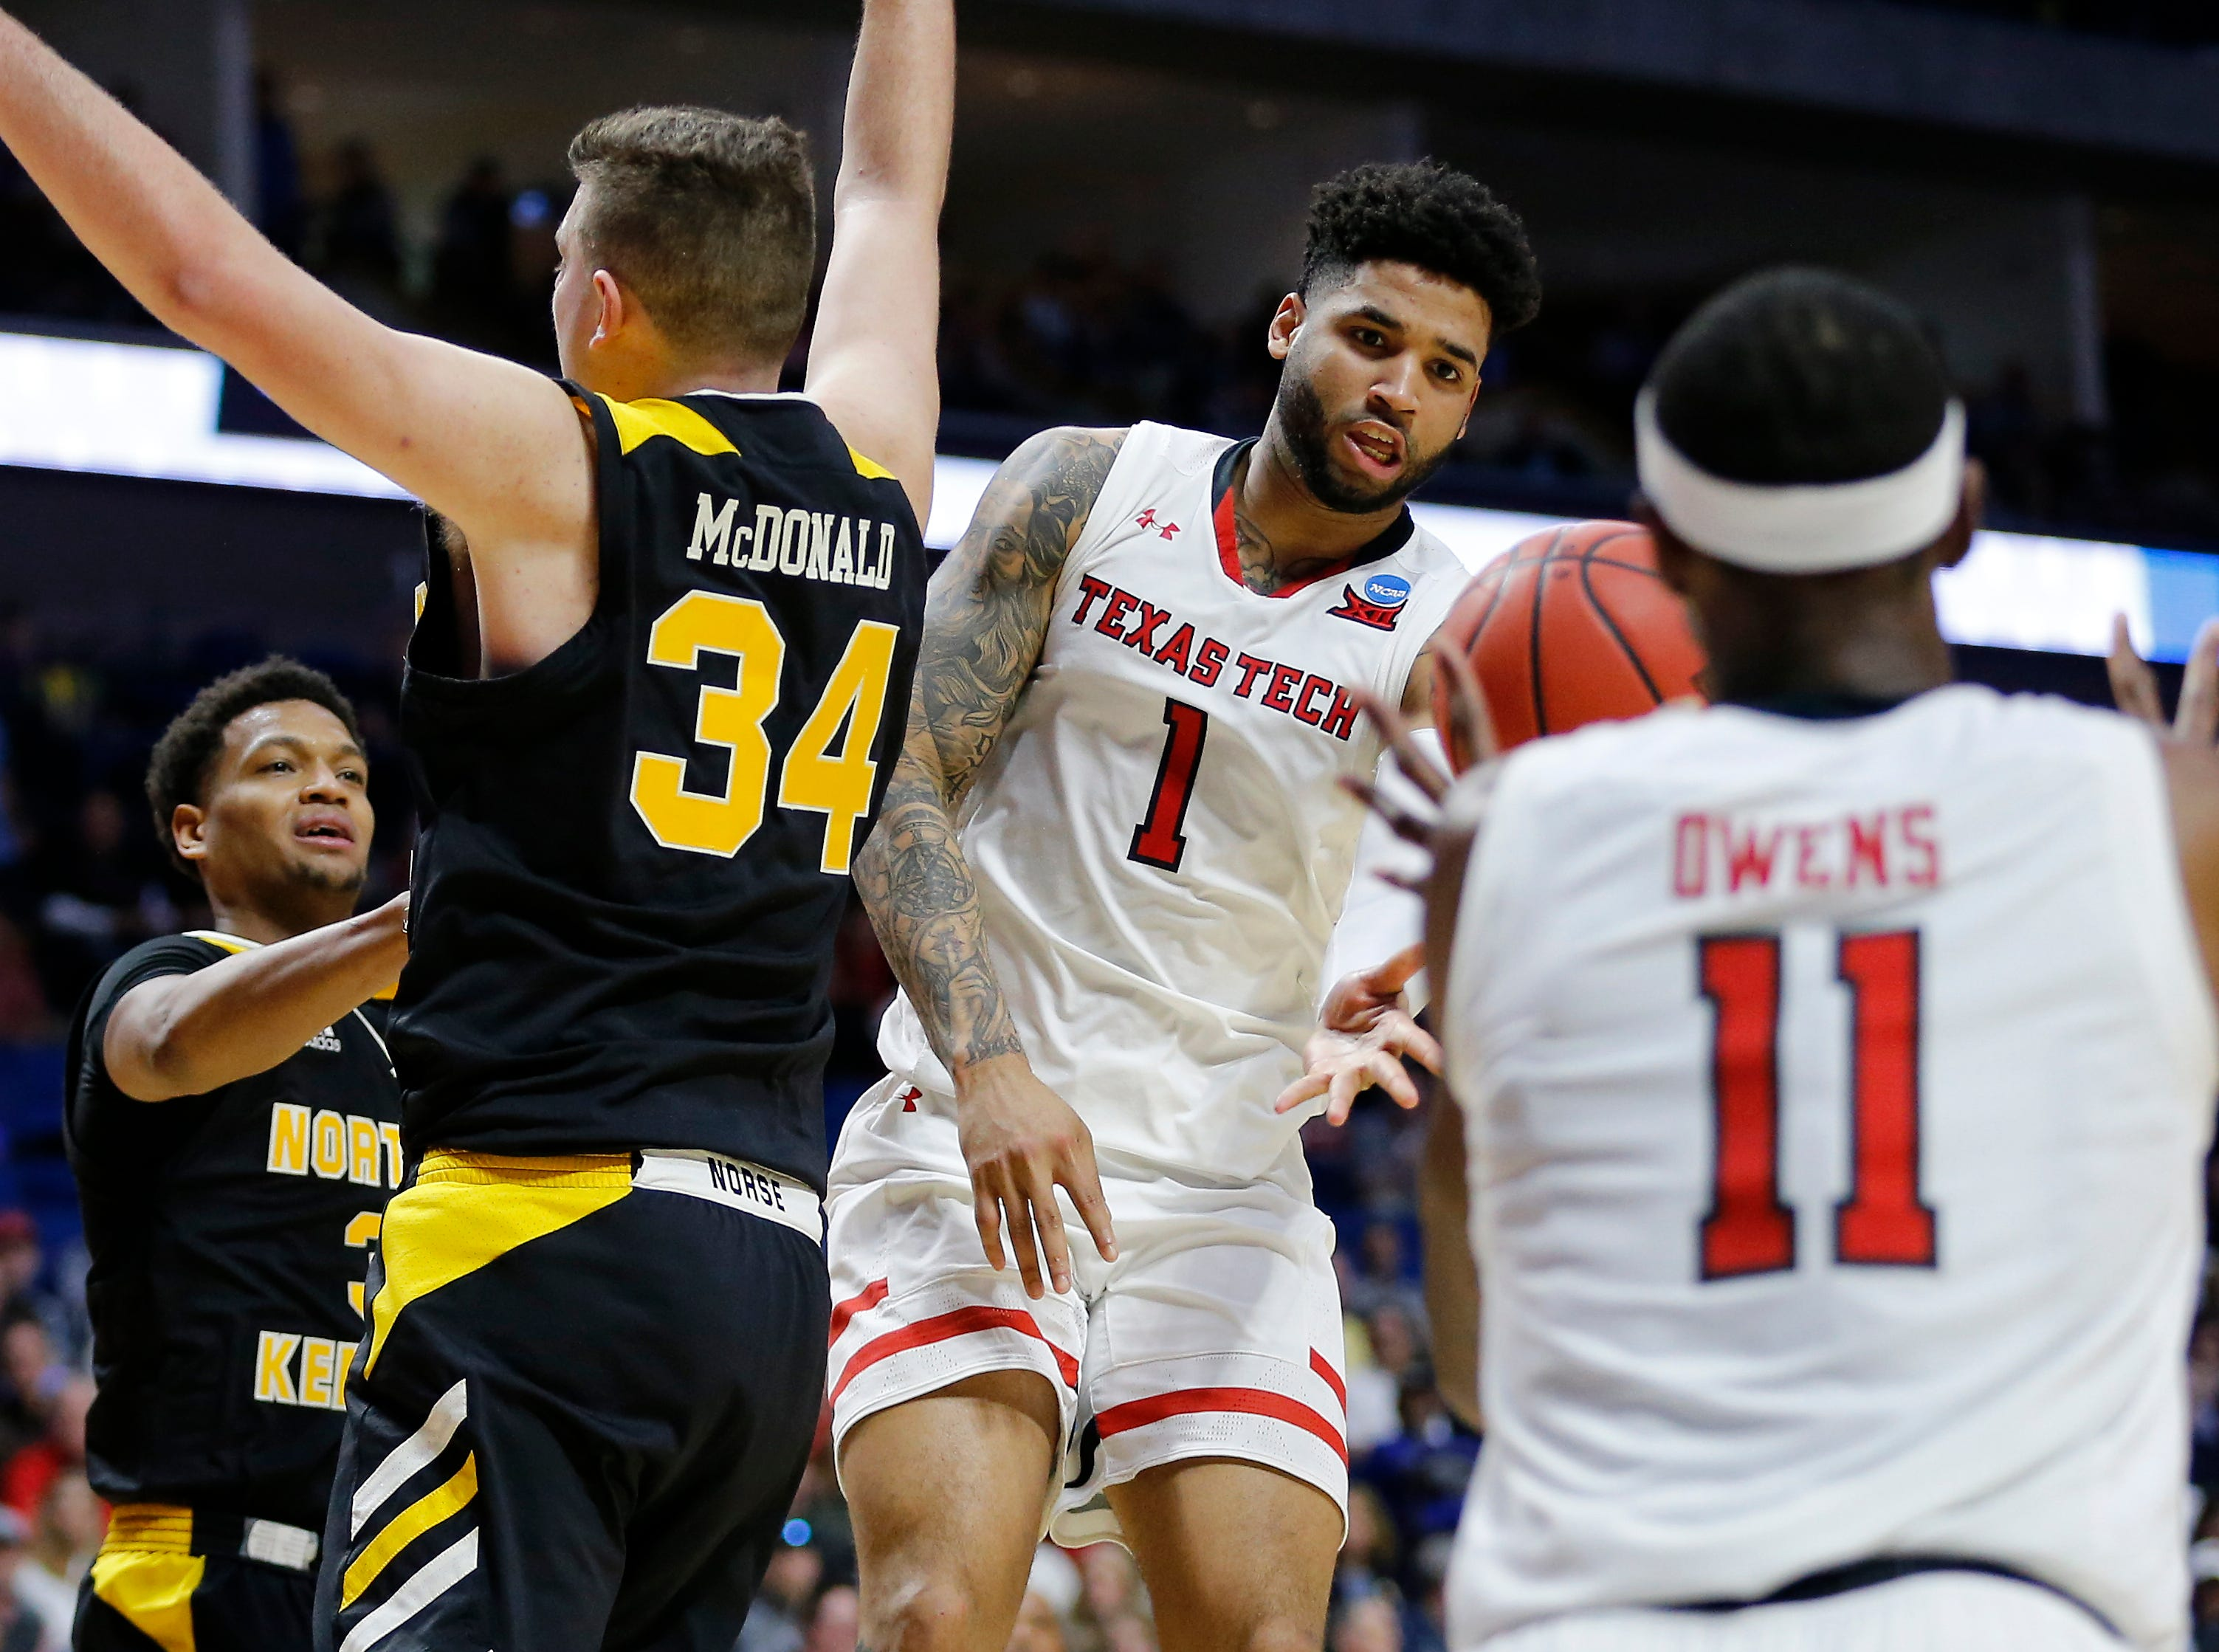 Texas Tech Red Raiders guard Brandone Francis (1) passes out to forward Tariq Owens (11) under the basket in the second half of the NCAA Tournament First Round game between the 14-seeded Northern Kentucky Norse and the 3-seeded Texas Tech Red Raiders the BOK Center in downtown Tulsa on Friday, March 22, 2019. NKU was knocked from the tournament with a 72-57 loss to the Red Raiders.